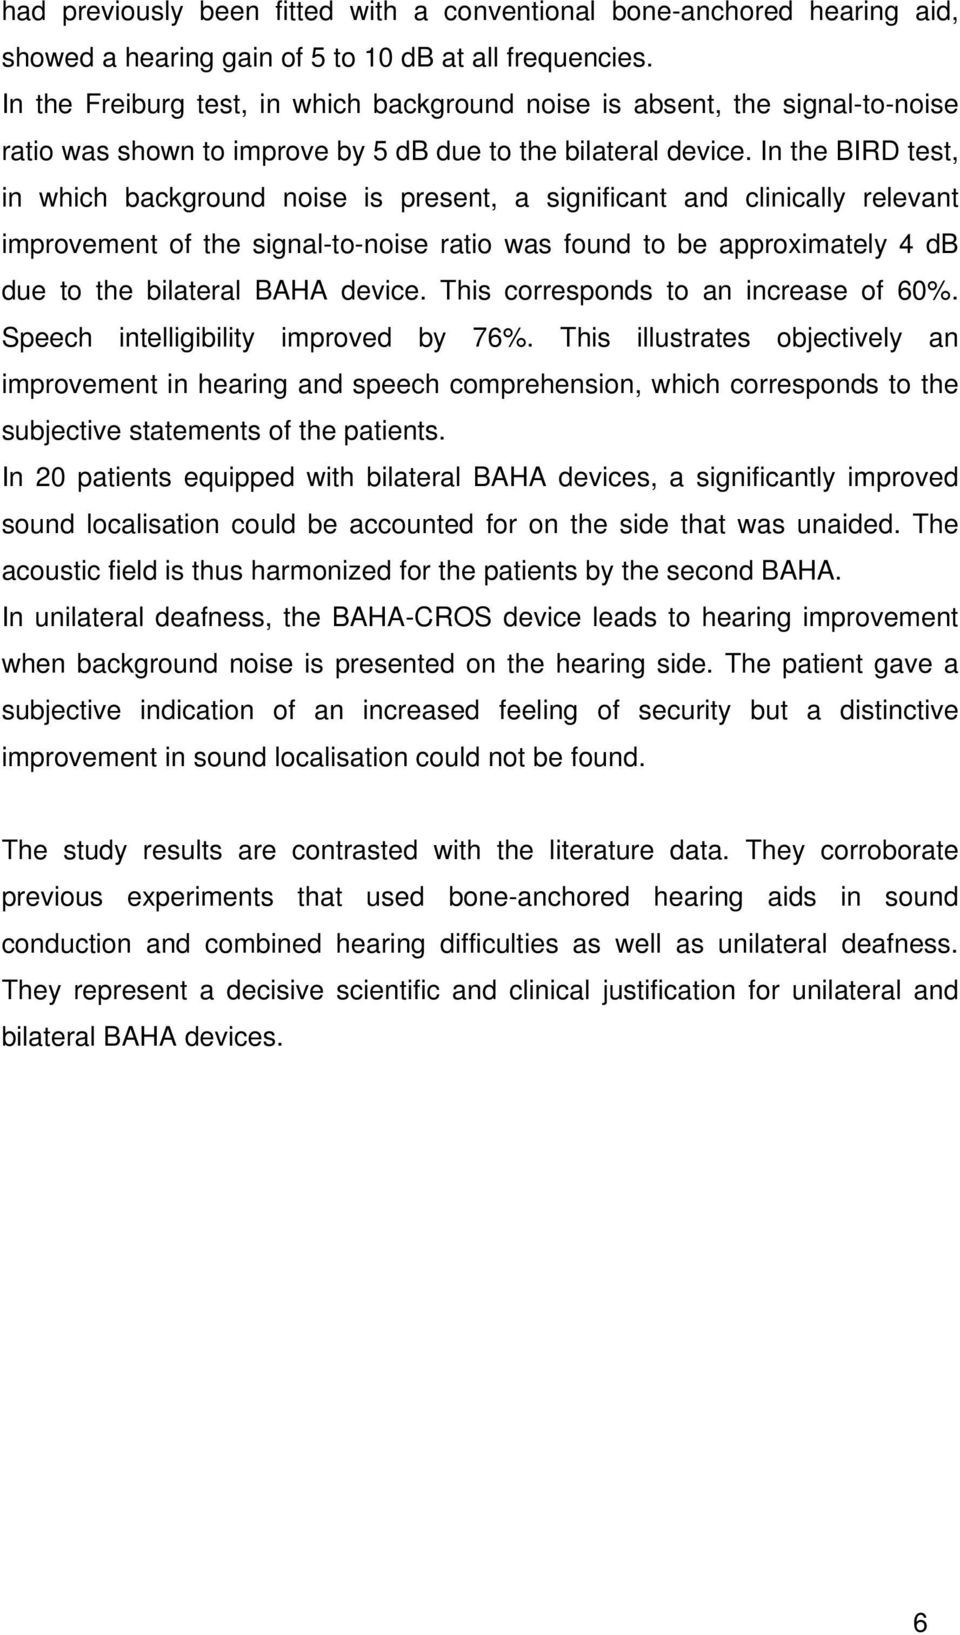 In the BIRD test, in which background noise is present, a significant and clinically relevant improvement of the signal-to-noise ratio was found to be approximately 4 db due to the bilateral BAHA